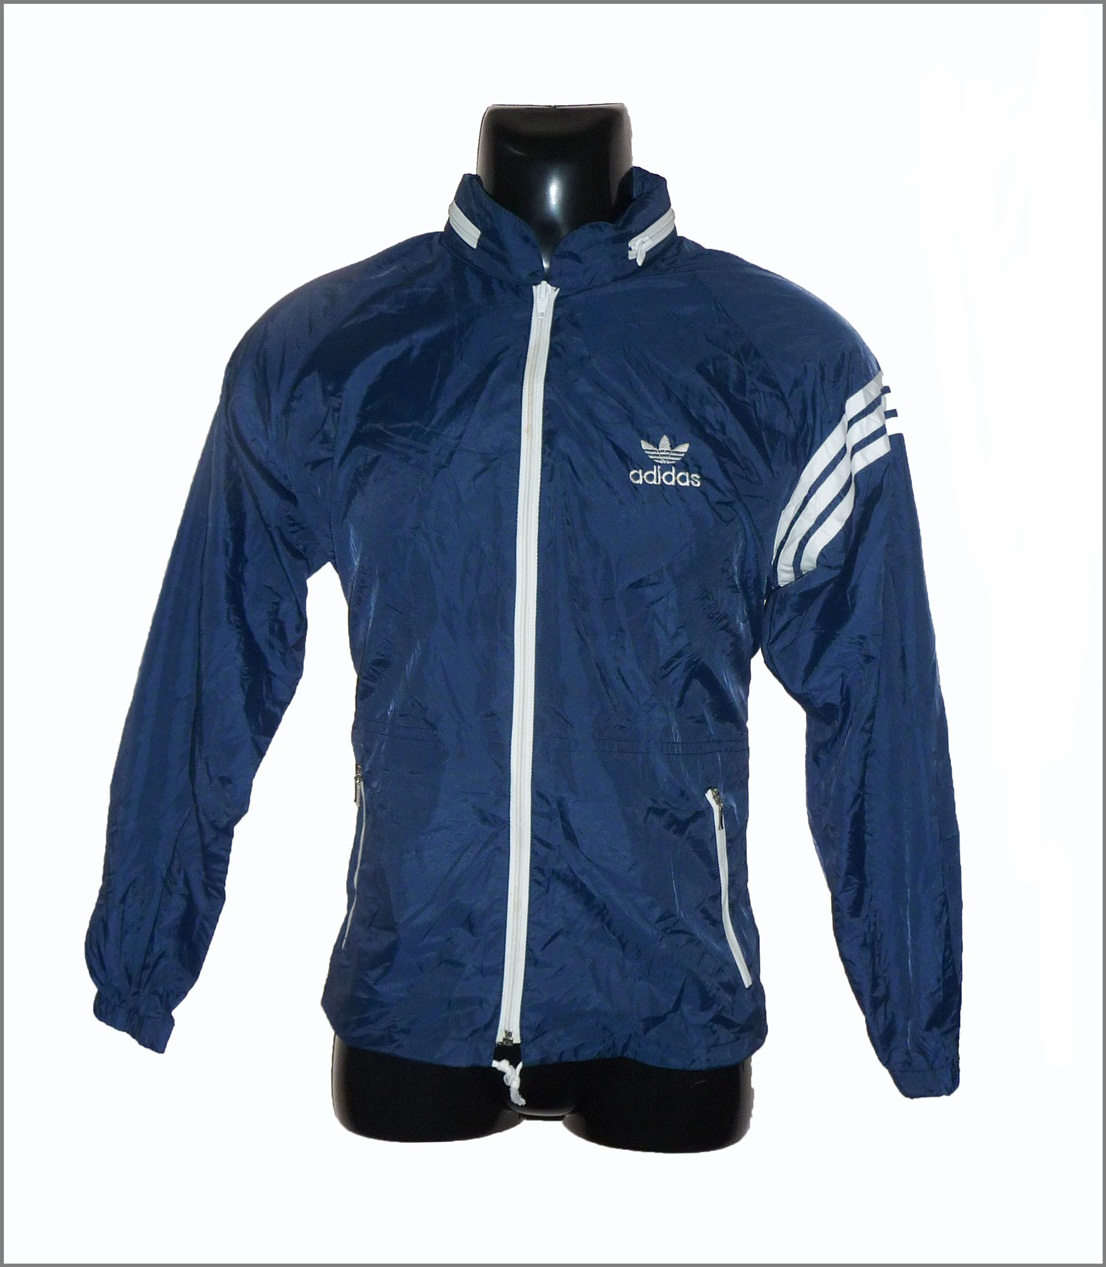 Dallek Shop Bundle Online Shoping Vintage Jacket Adidas